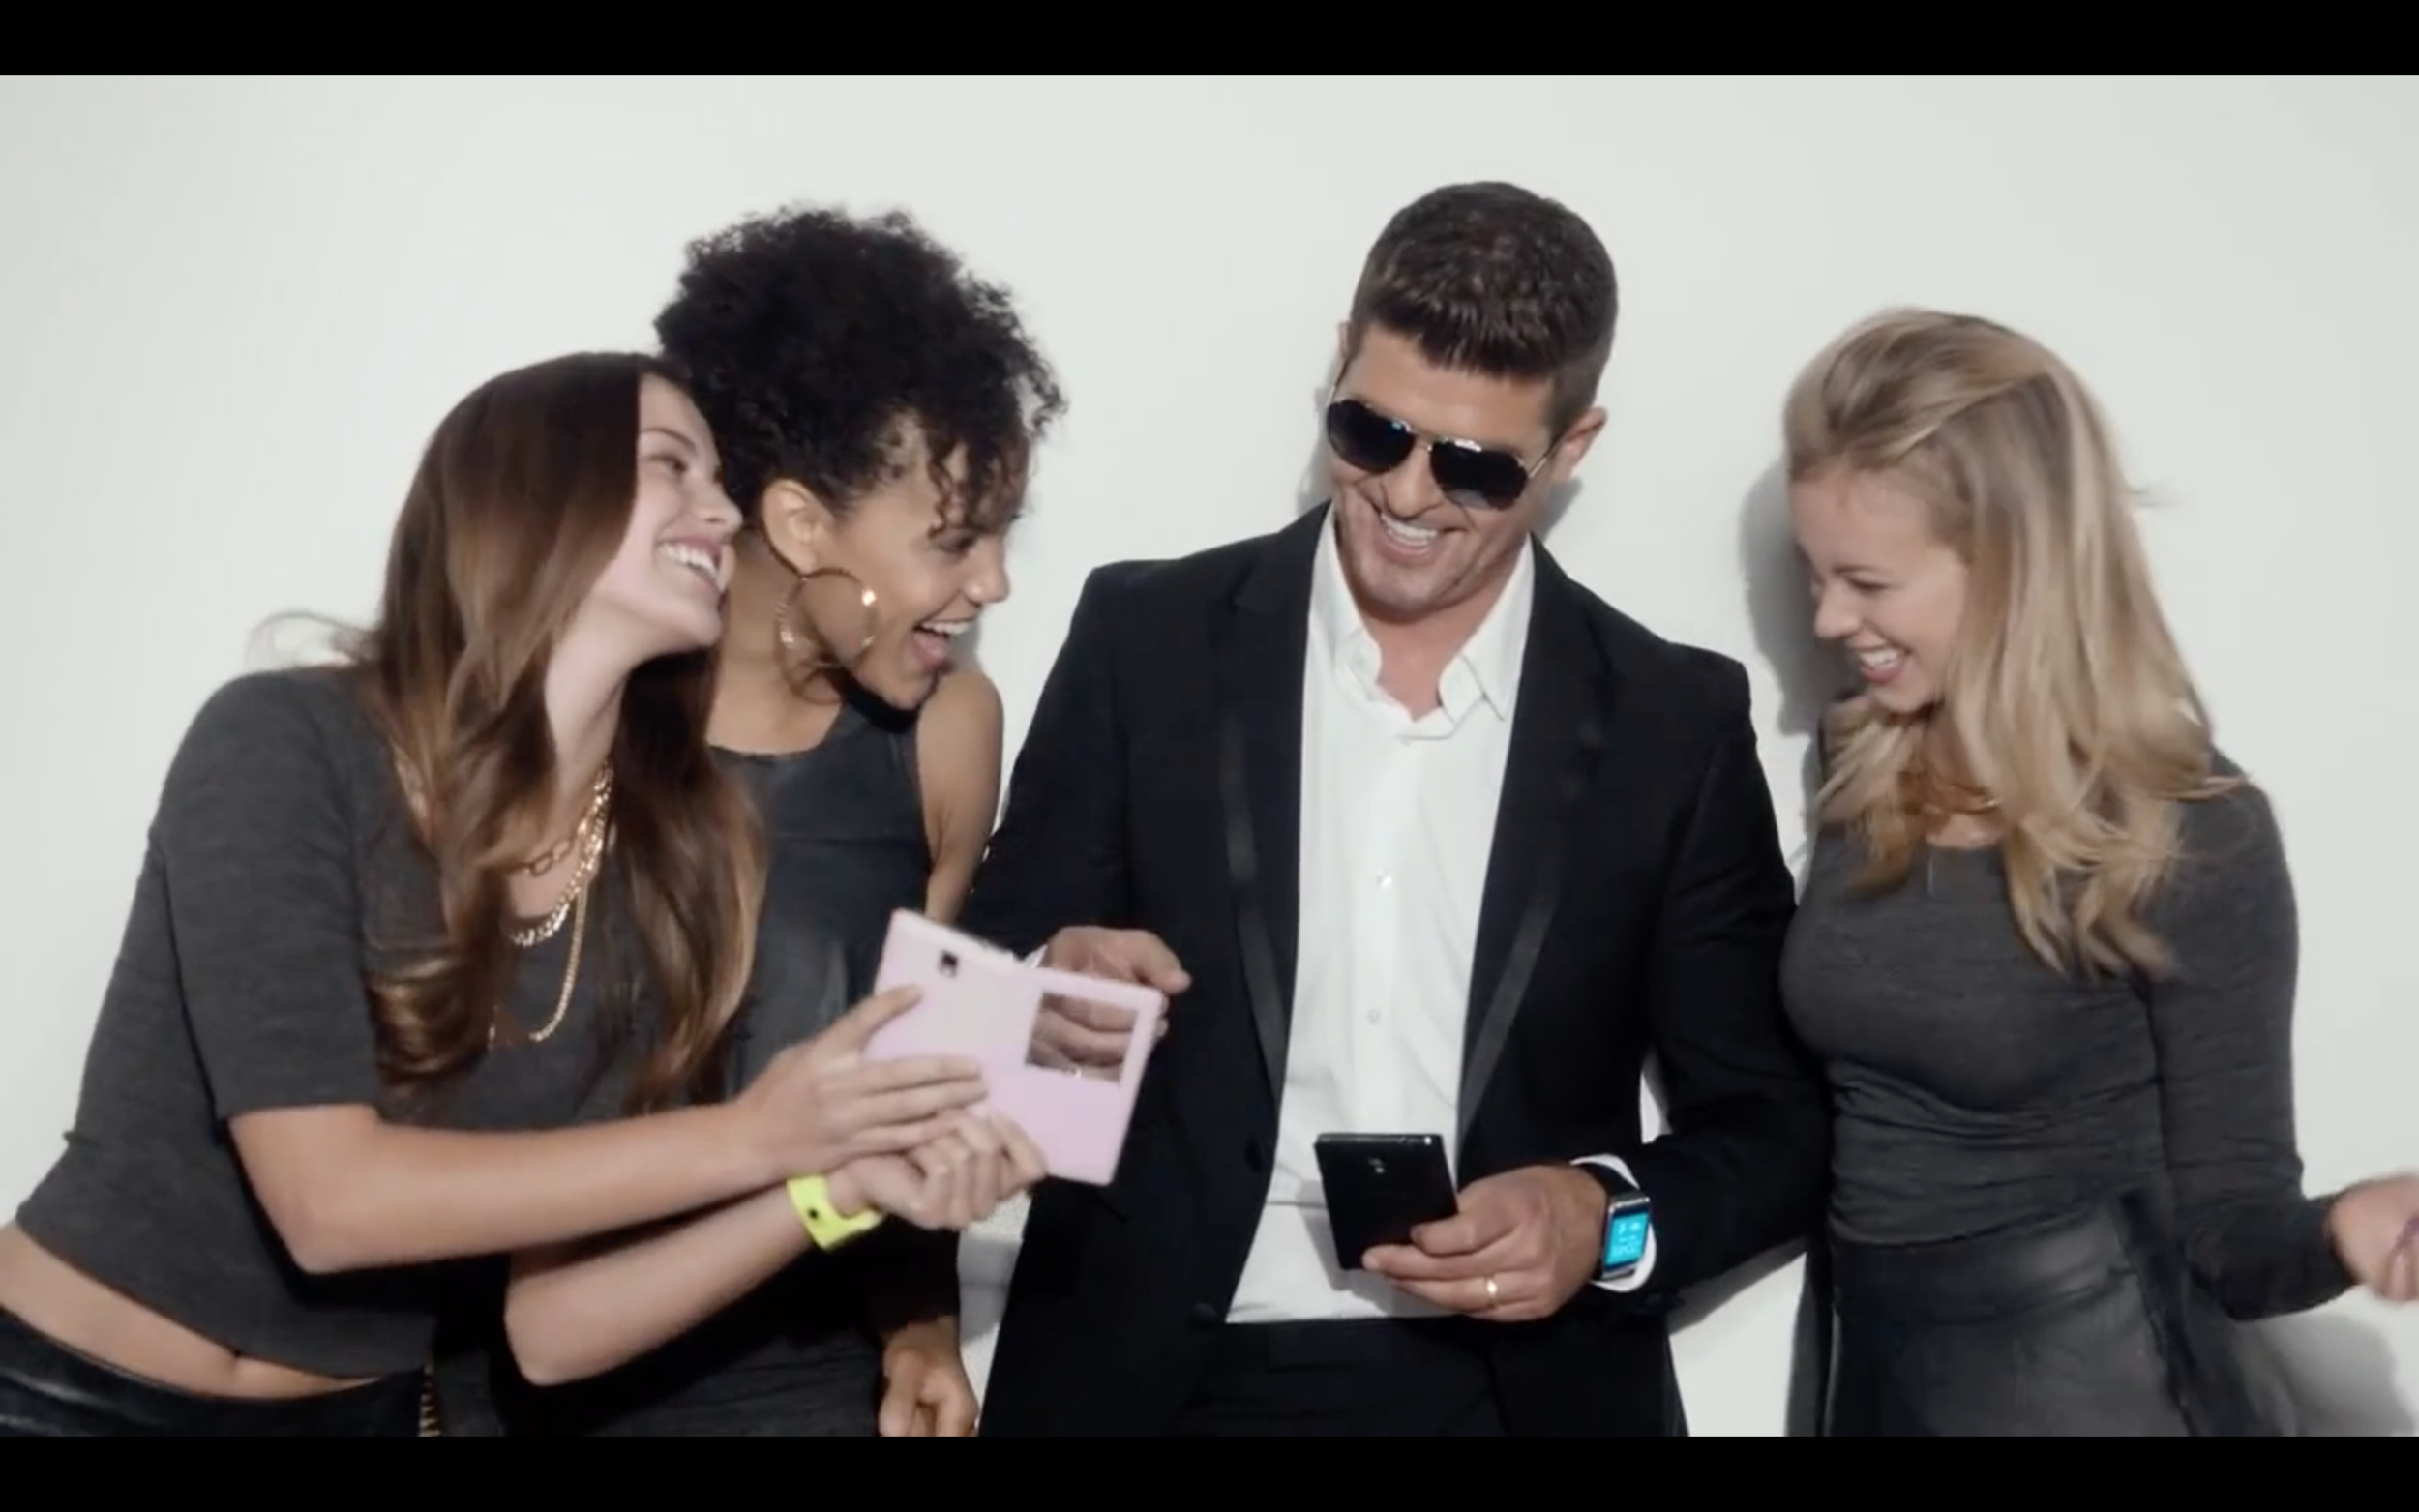 SAMSUNG GALAXY COMMERCIAL W/ ROBIN THICKE